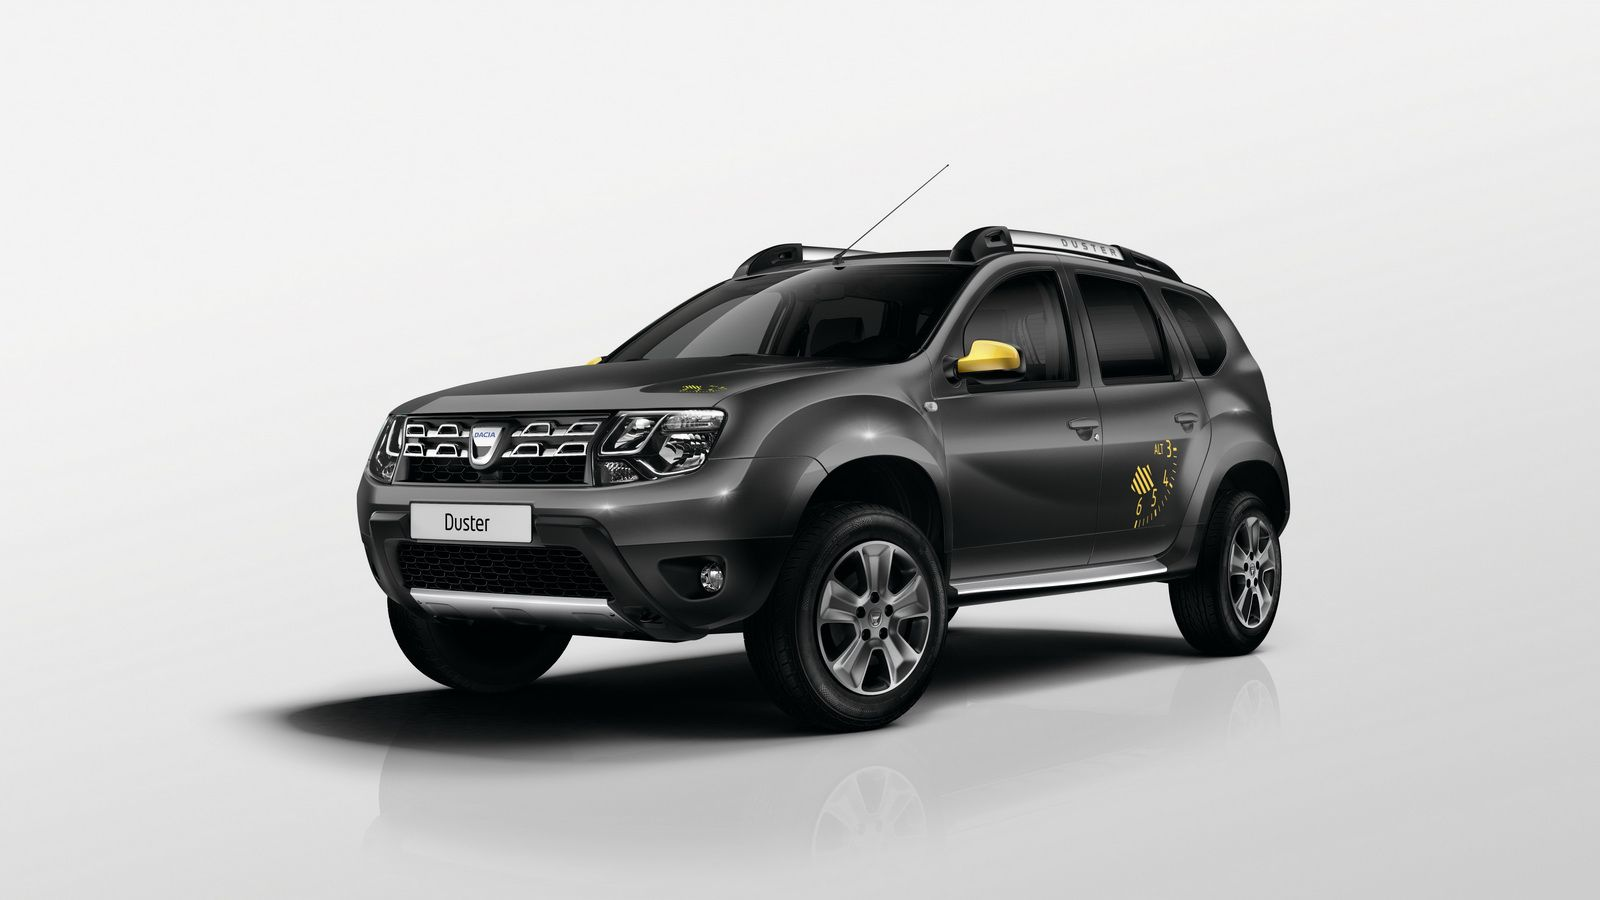 Renault group sold 2 7 million vehicles in 2014 dacia exceeded 500 000 sales